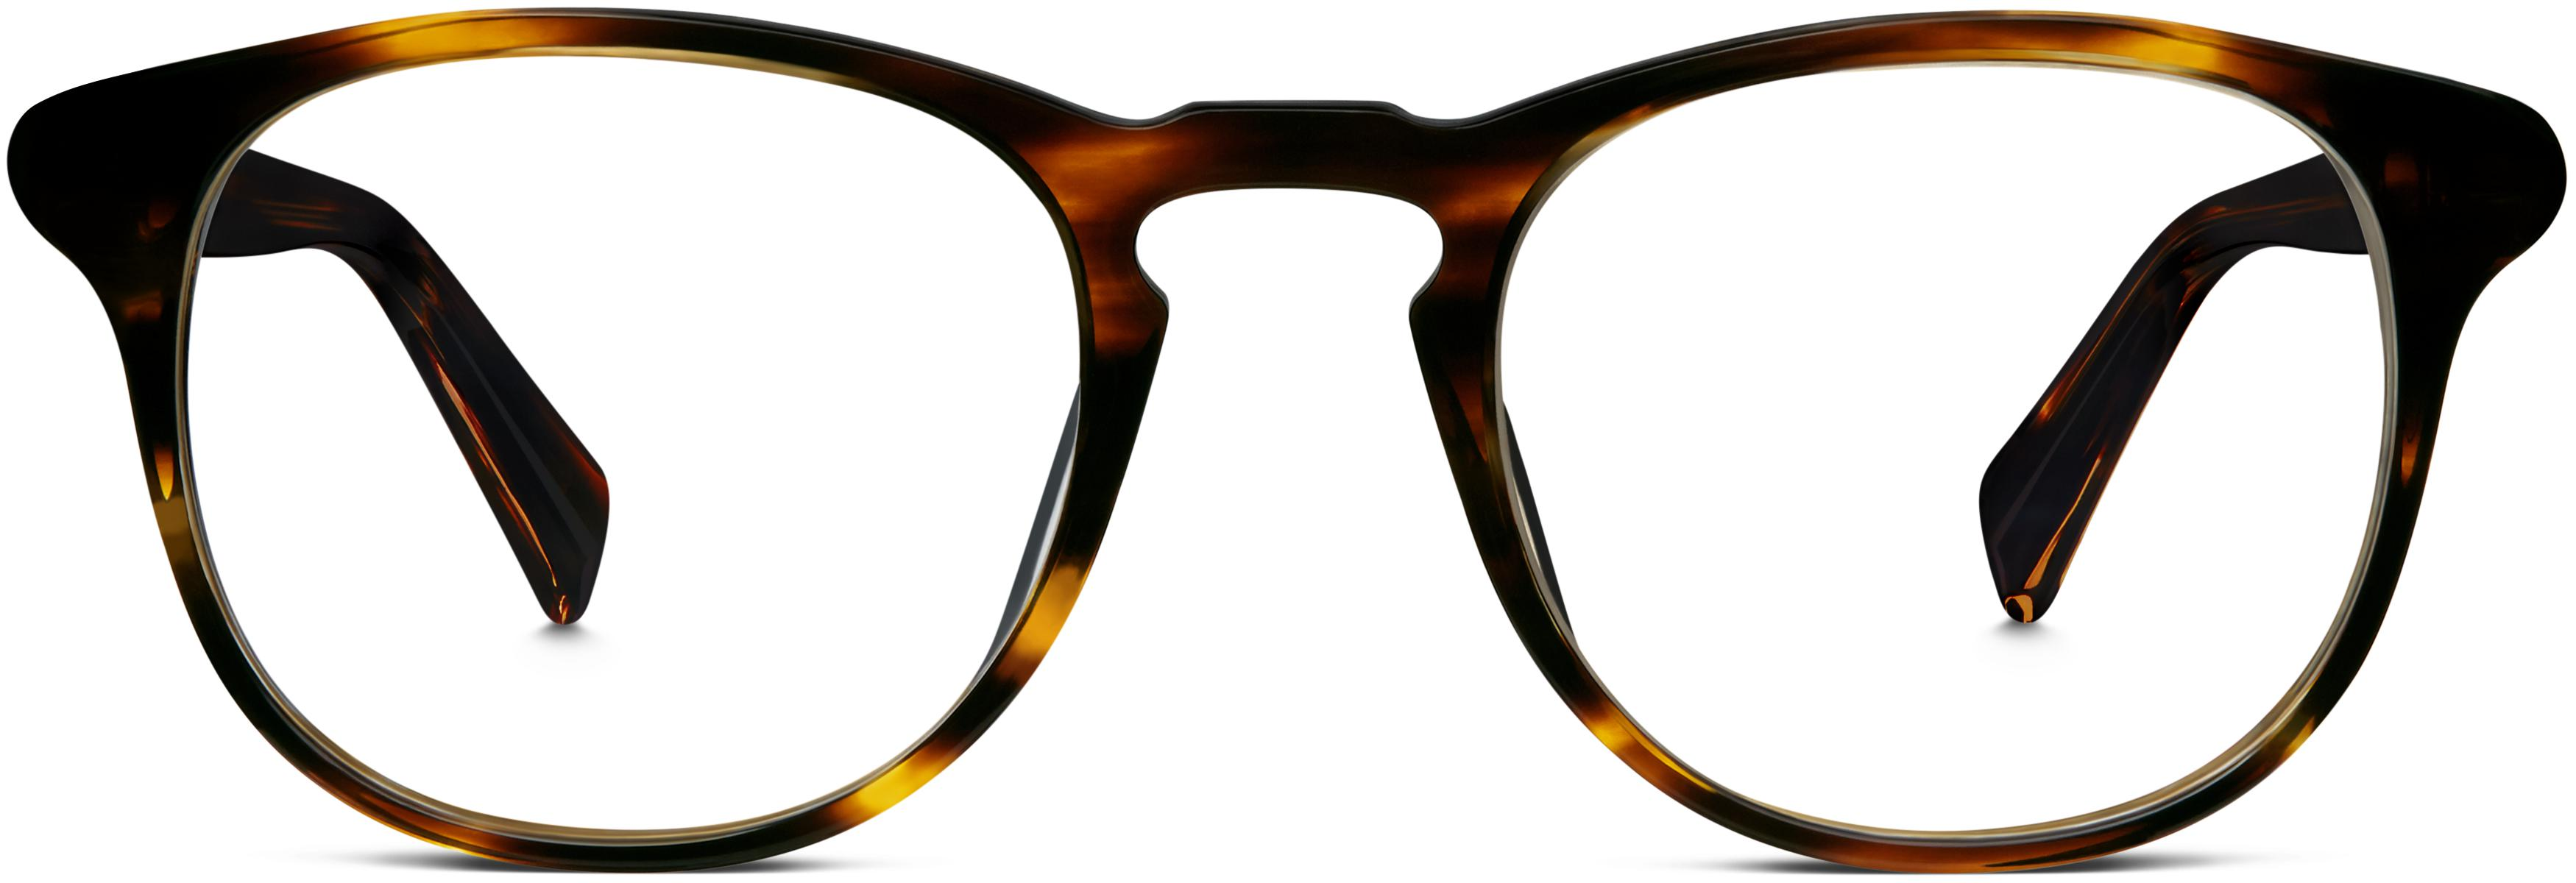 1c1160ae9f2 Women s Eyeglasses